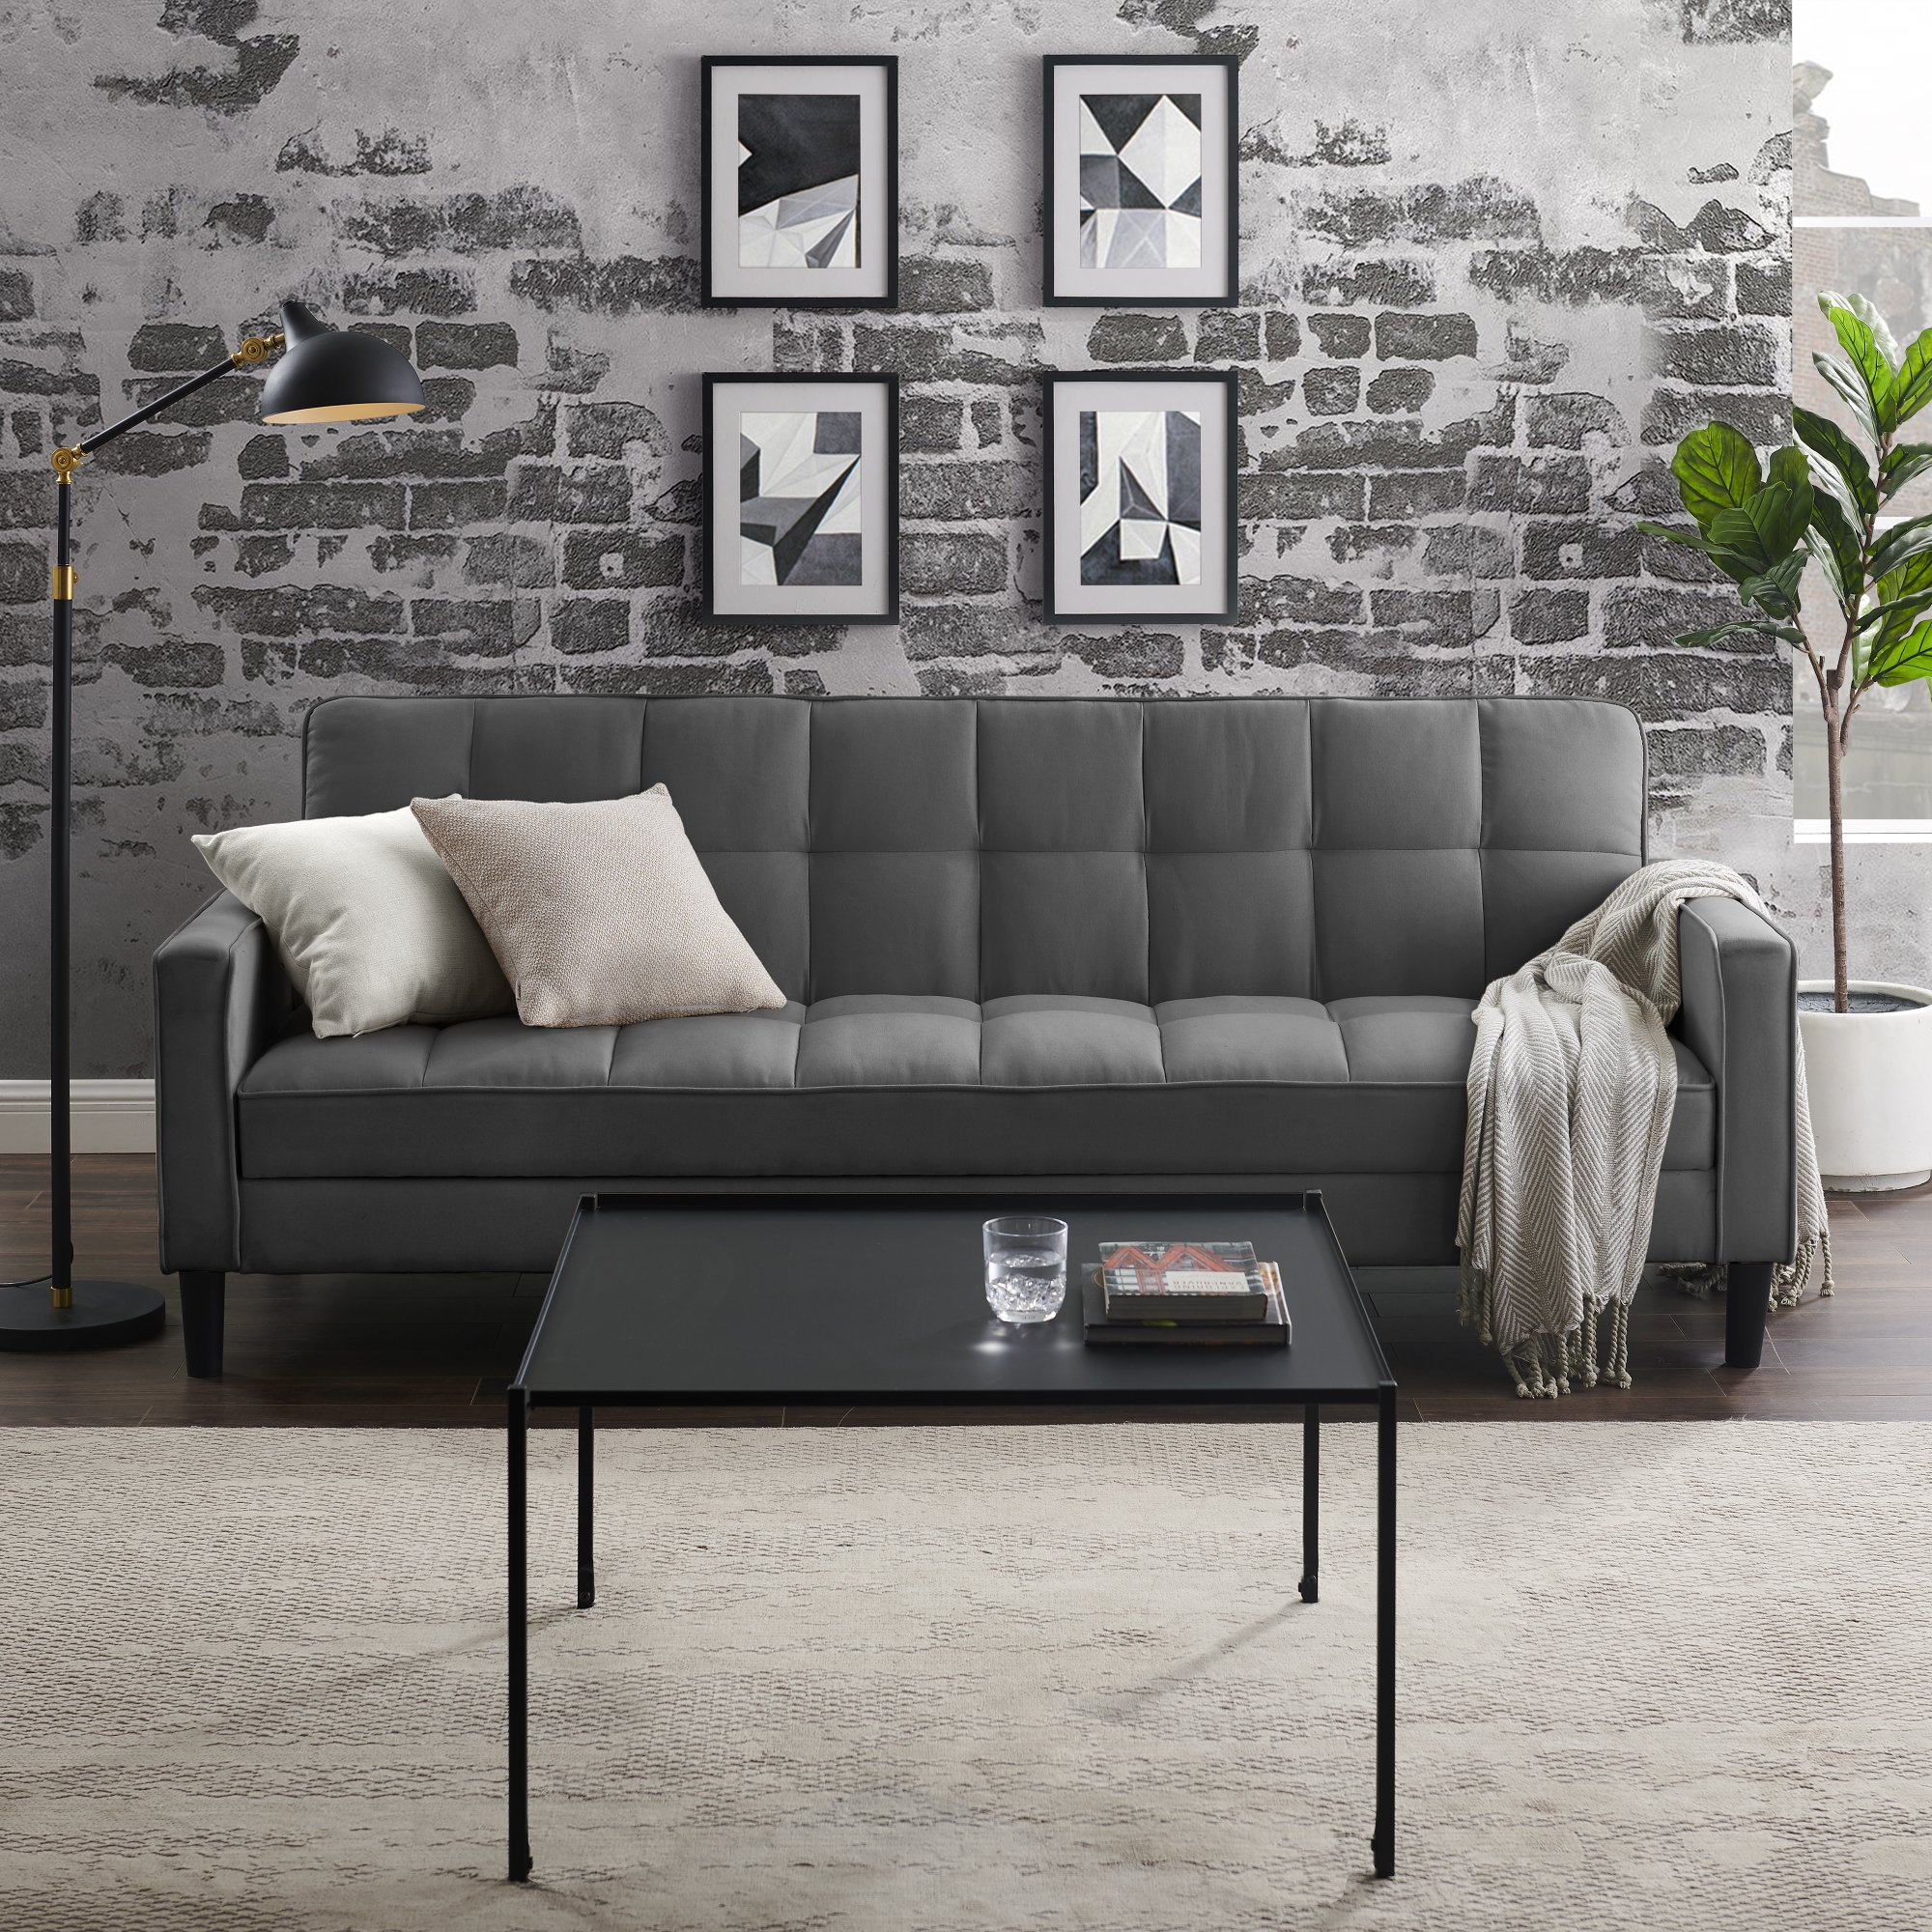 Loft Lyfe Charcoal Linen Sofa Bed Convertible Tufted